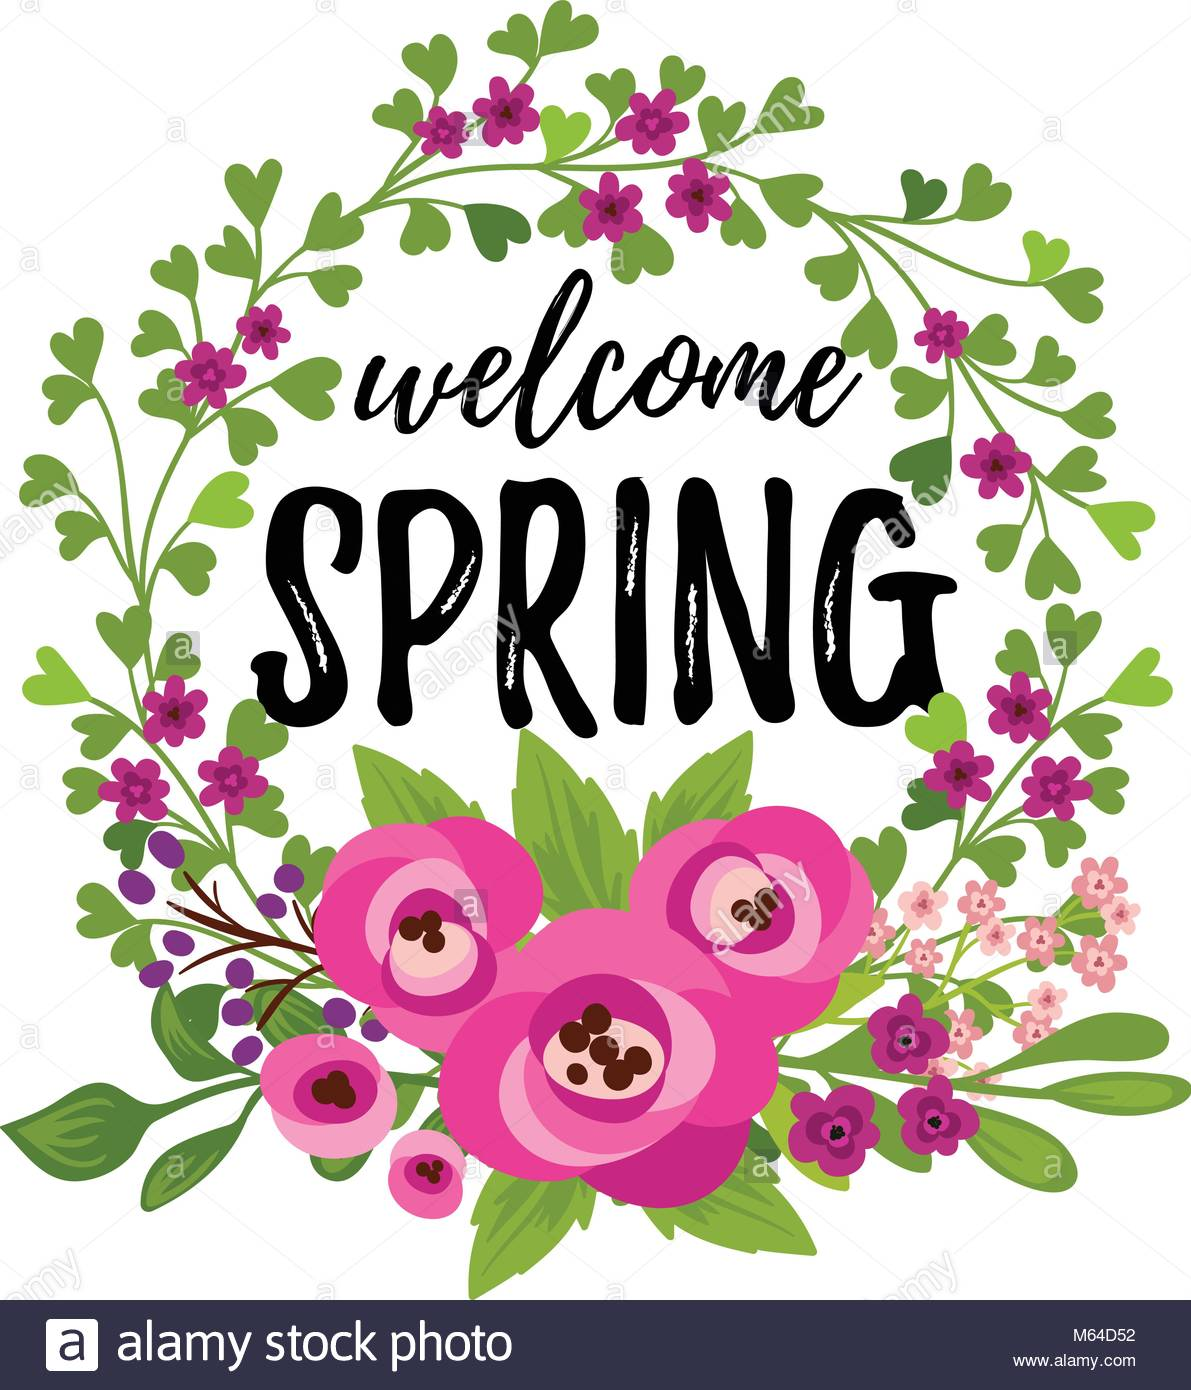 Vector illustration, floral card with Welcome Spring text Stock.